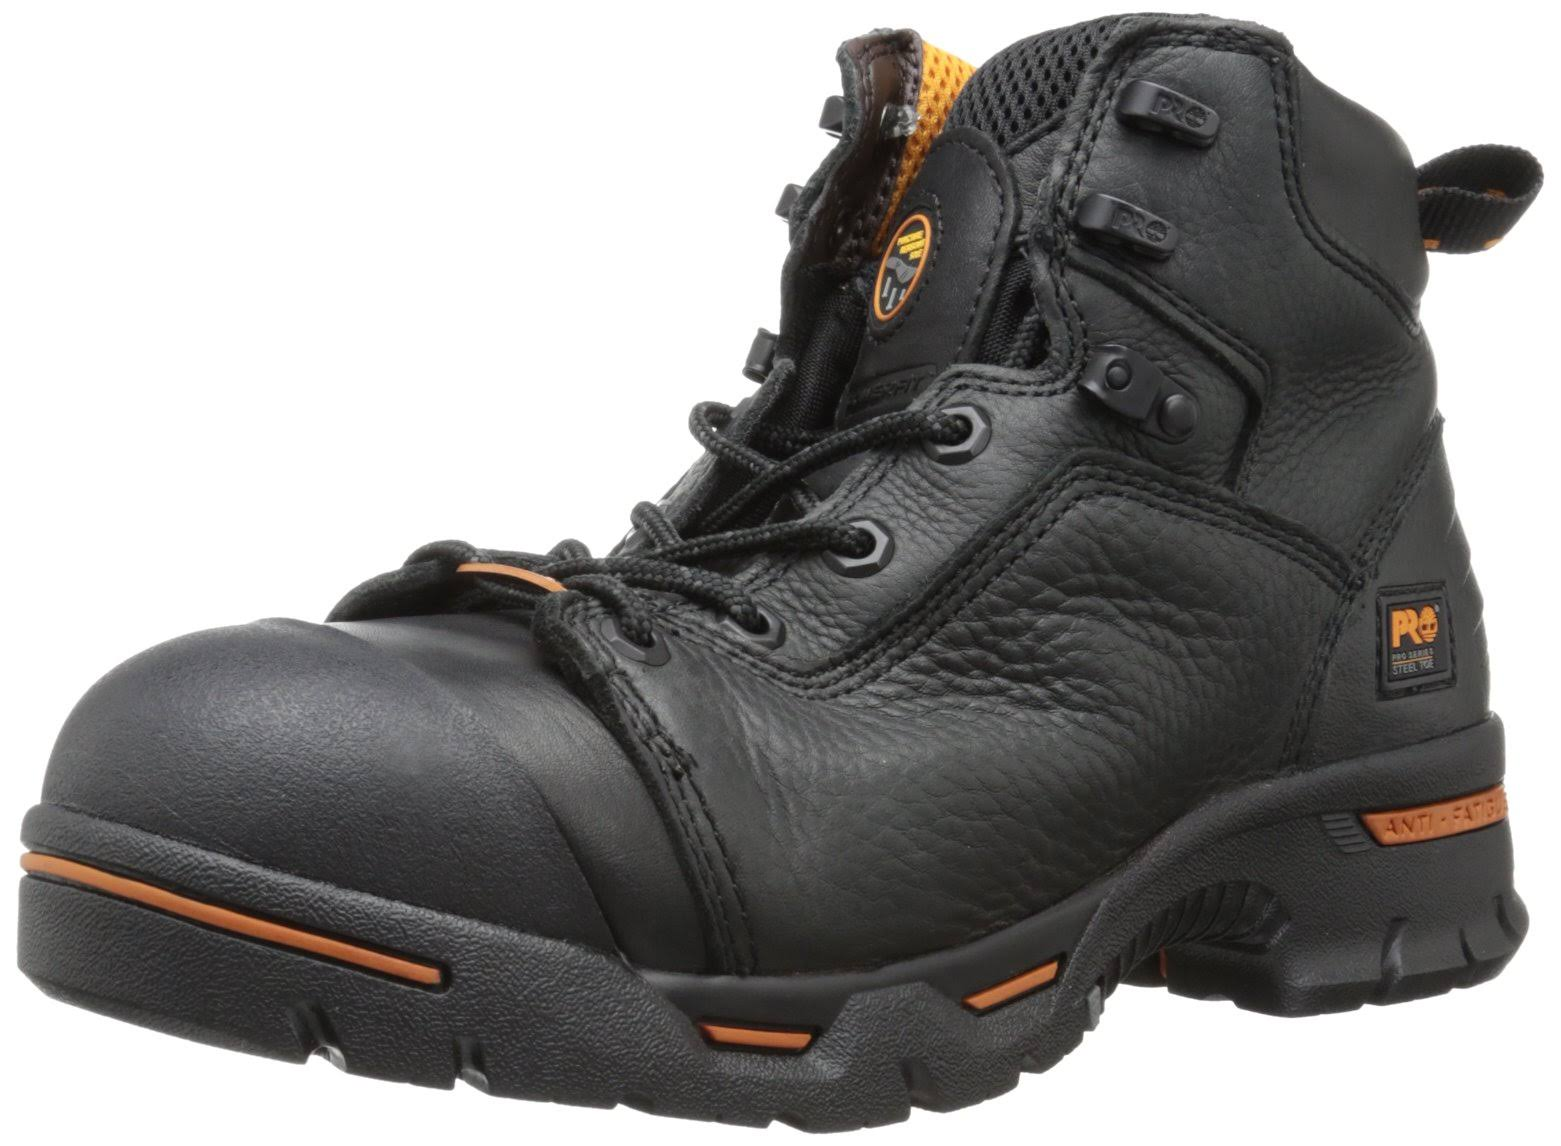 12 Size Pro Custom Endurance Boots Timberland Fit Work Men's Resistant Safety Toe Black Waterproof Steel Me Lehigh Puncture pHUqvB